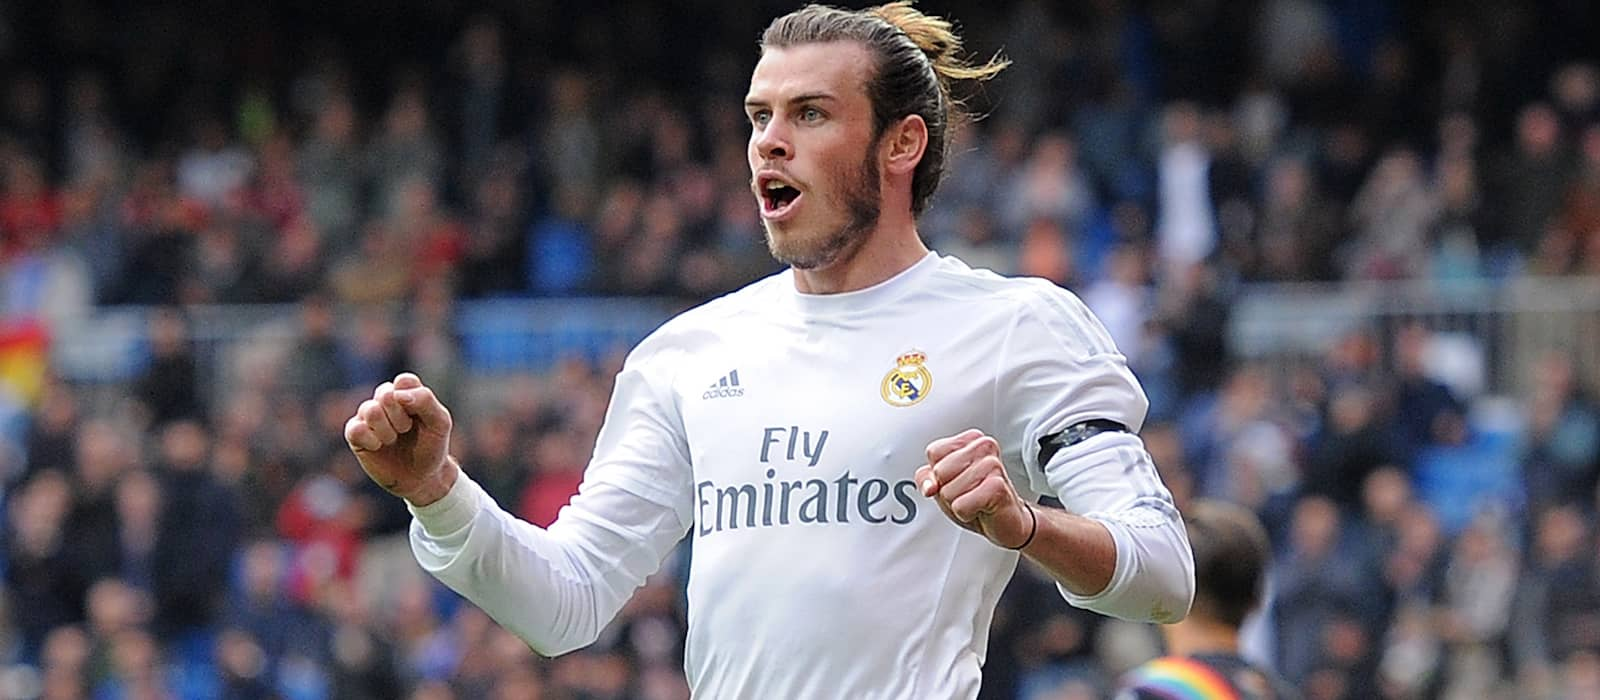 Jose Mourinho urges Manchester United hierarchy to launch £100m bid for Gareth Bale – report